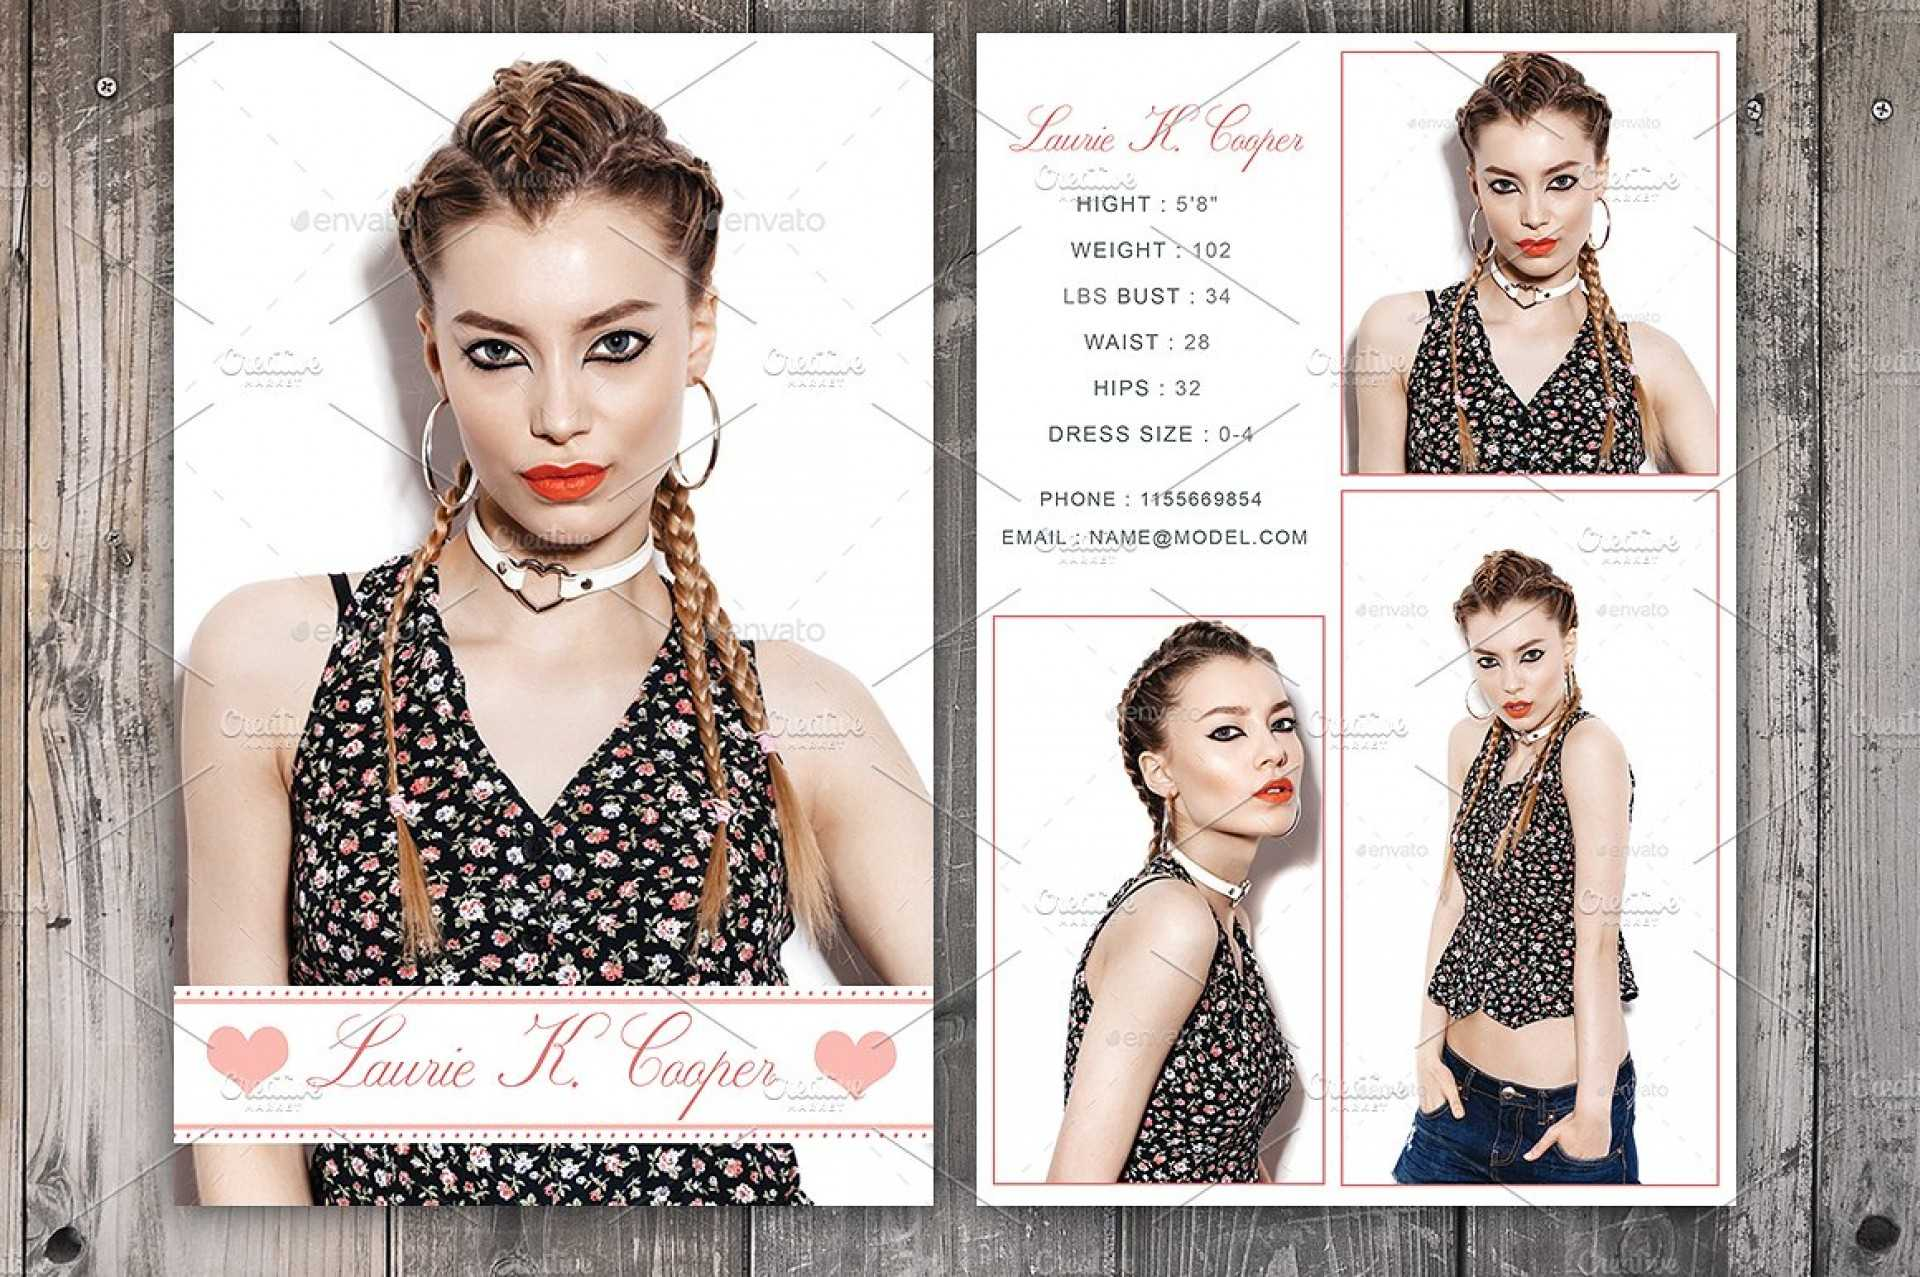 Free Model Comp Card Templates - C Punkt Within Comp Card Template Psd